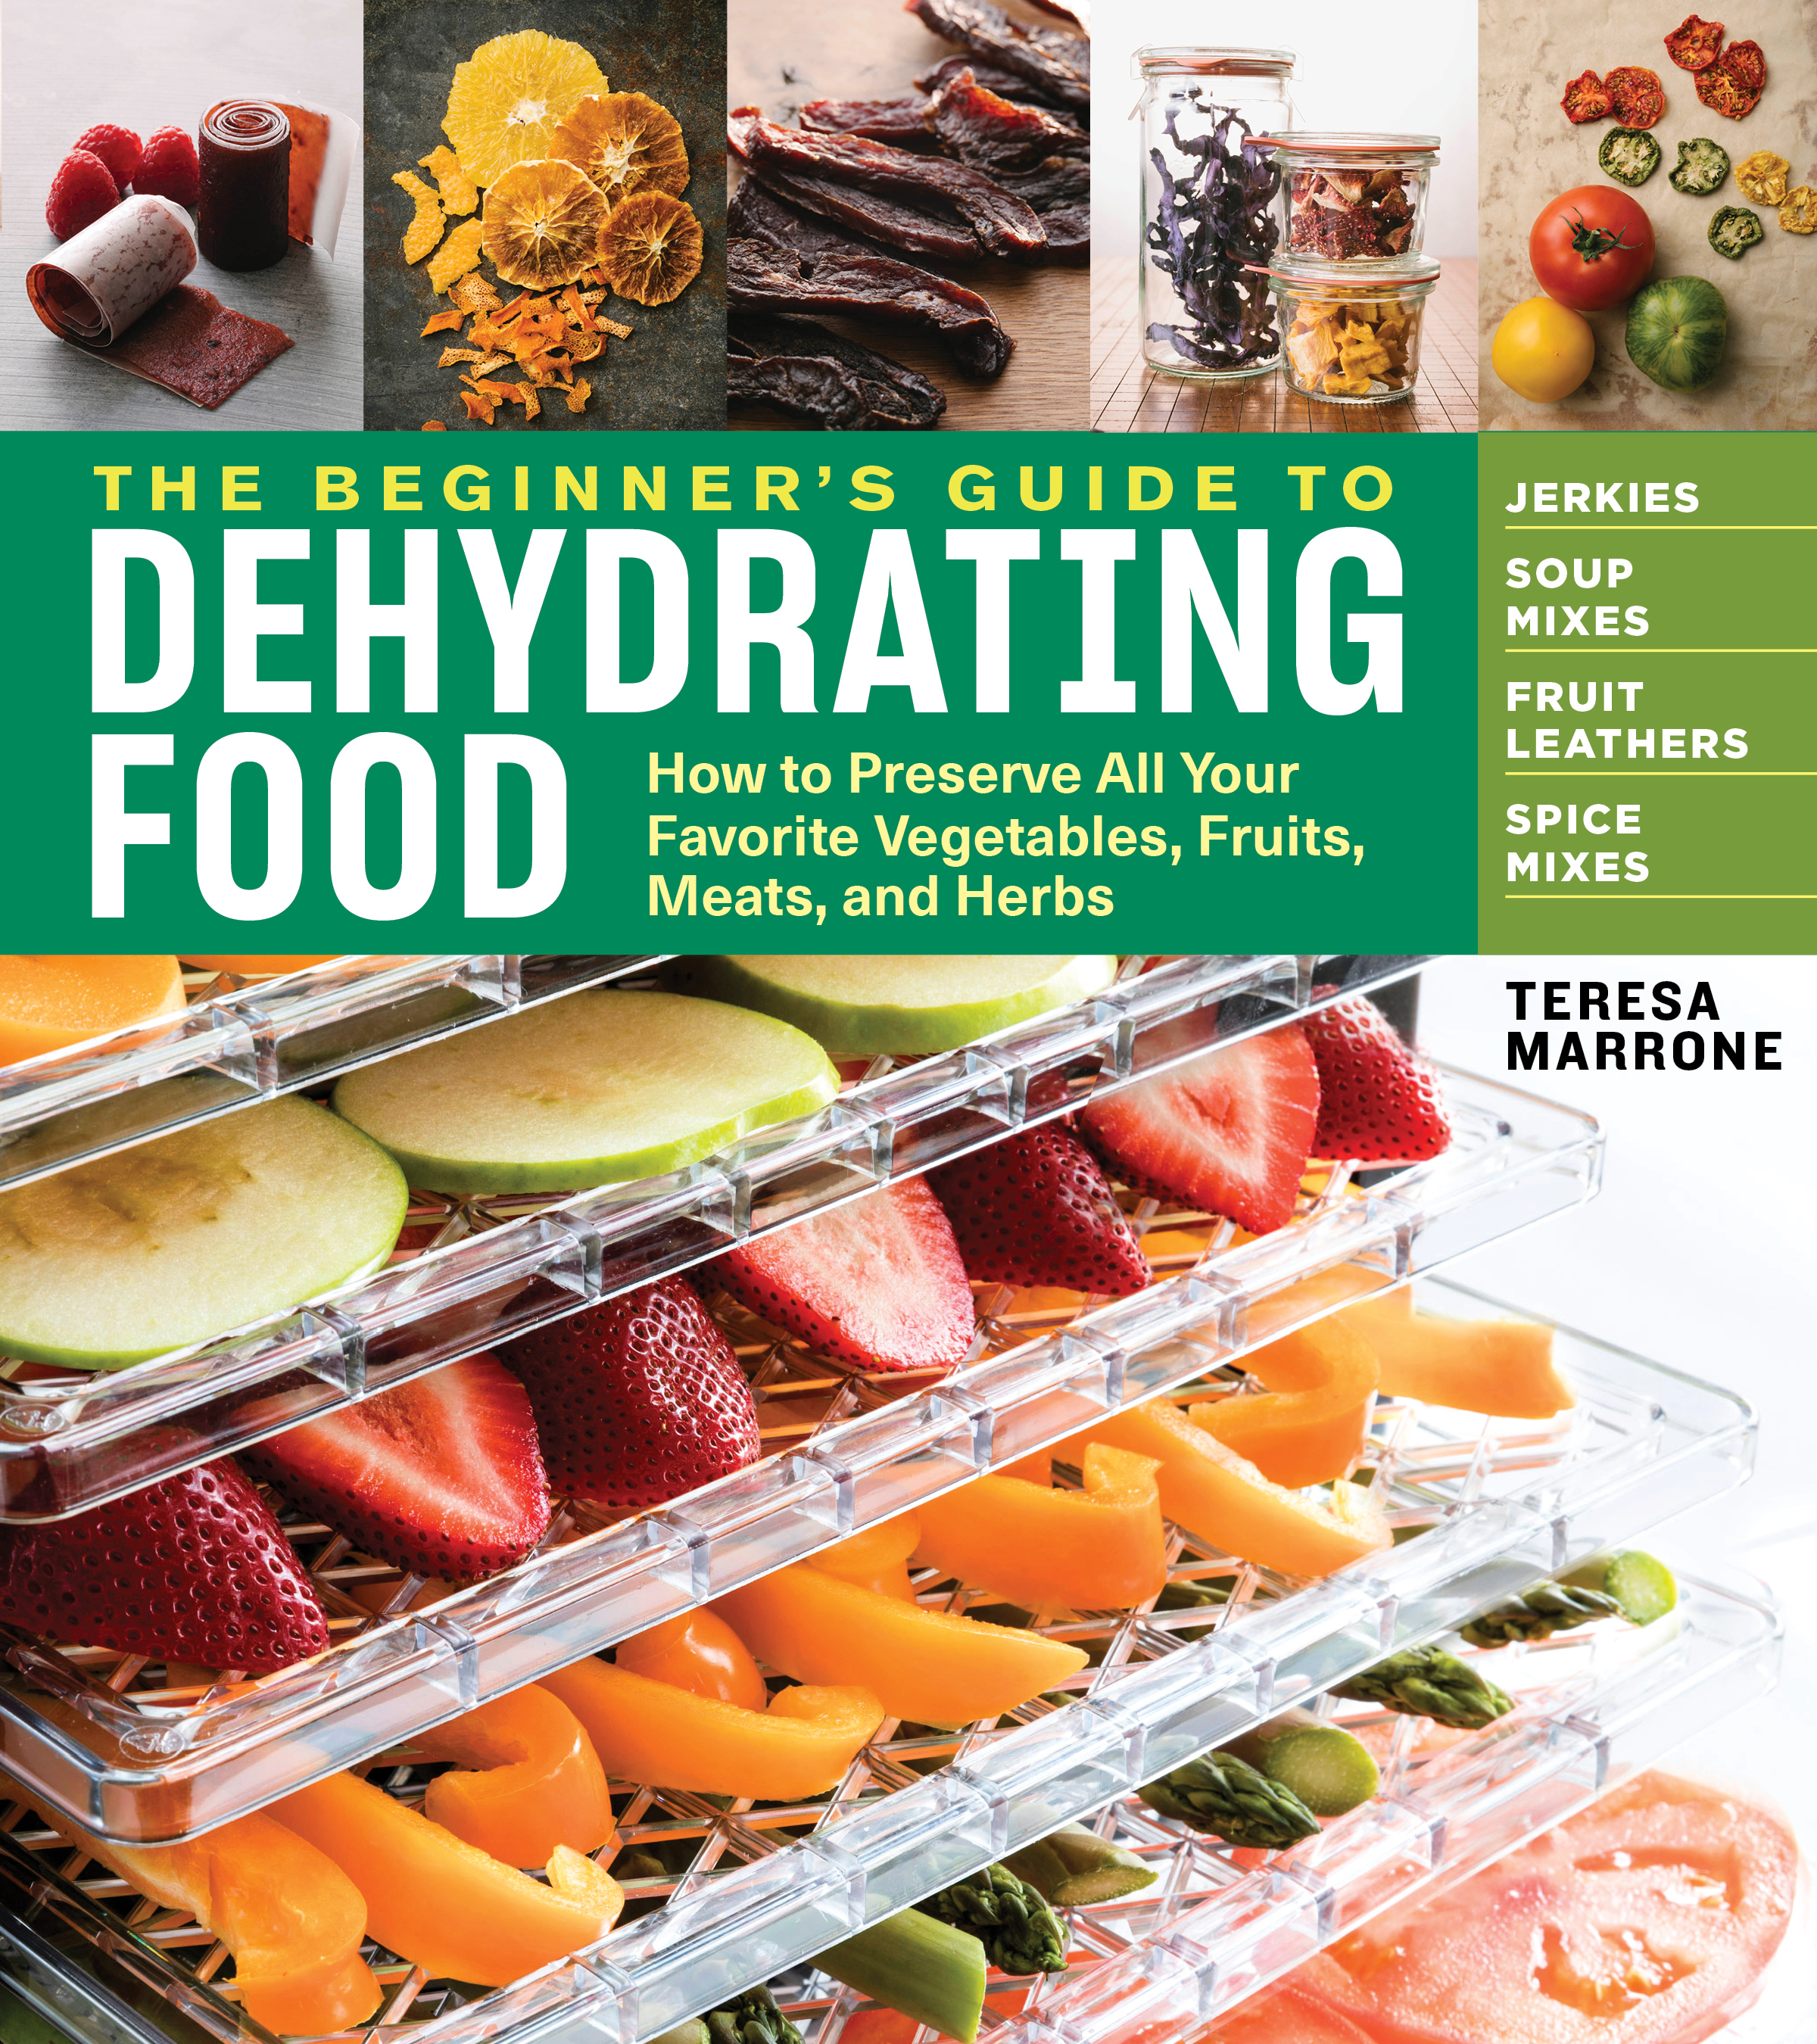 The Beginner's Guide to Dehydrating Food, 2nd Edition How to Preserve All Your Favorite Vegetables, Fruits, Meats, and Herbs - Teresa Marrone